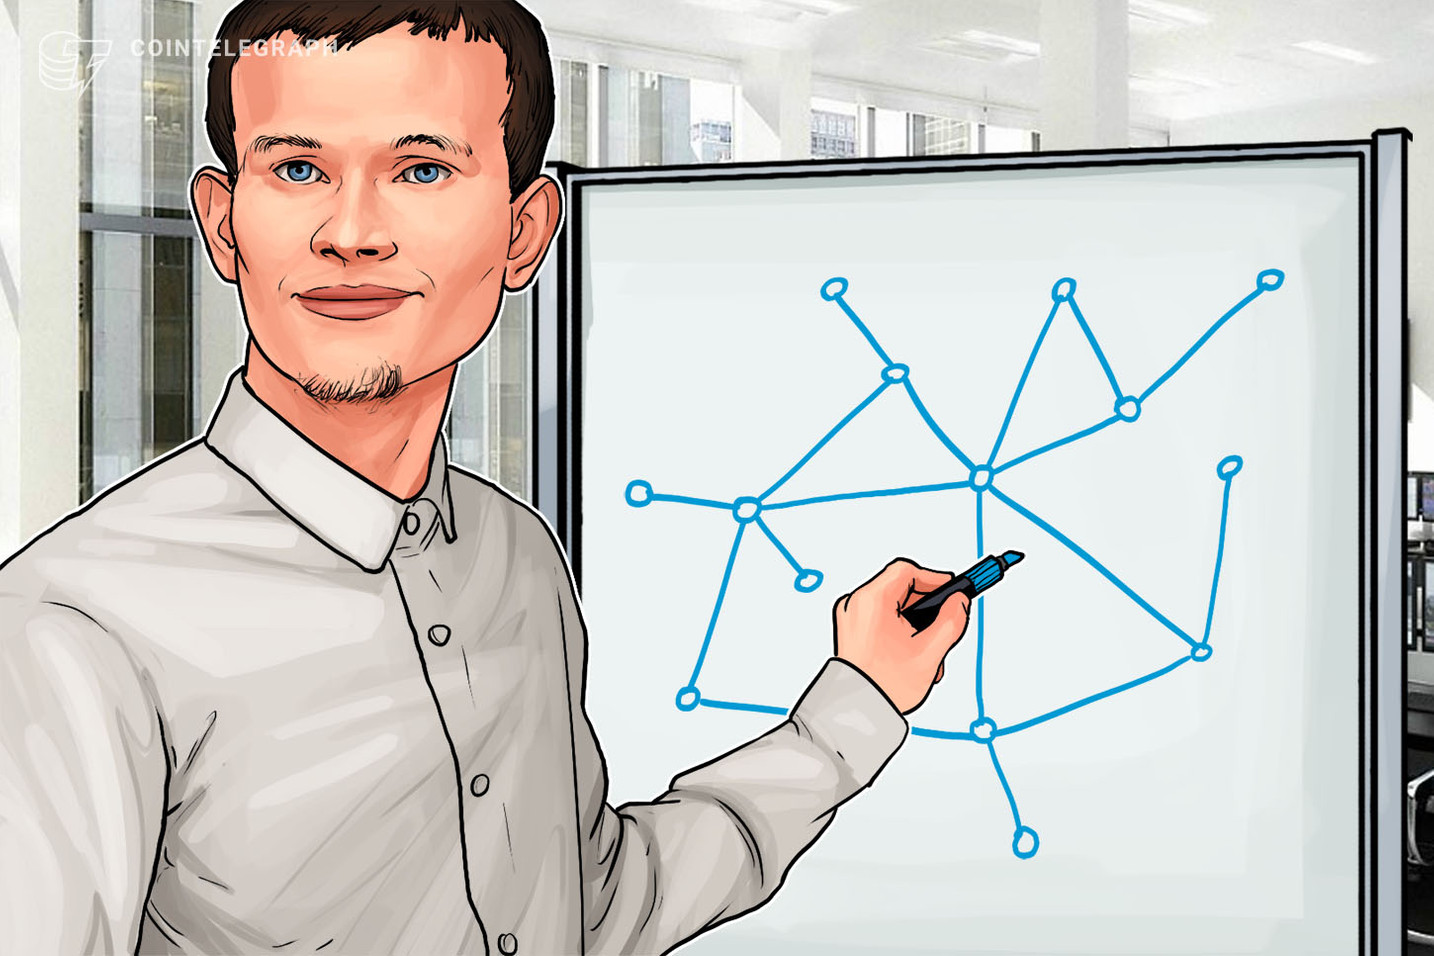 Blockchains and Antitrust Laws Share the Same Objective, Says Vitalik Buterin